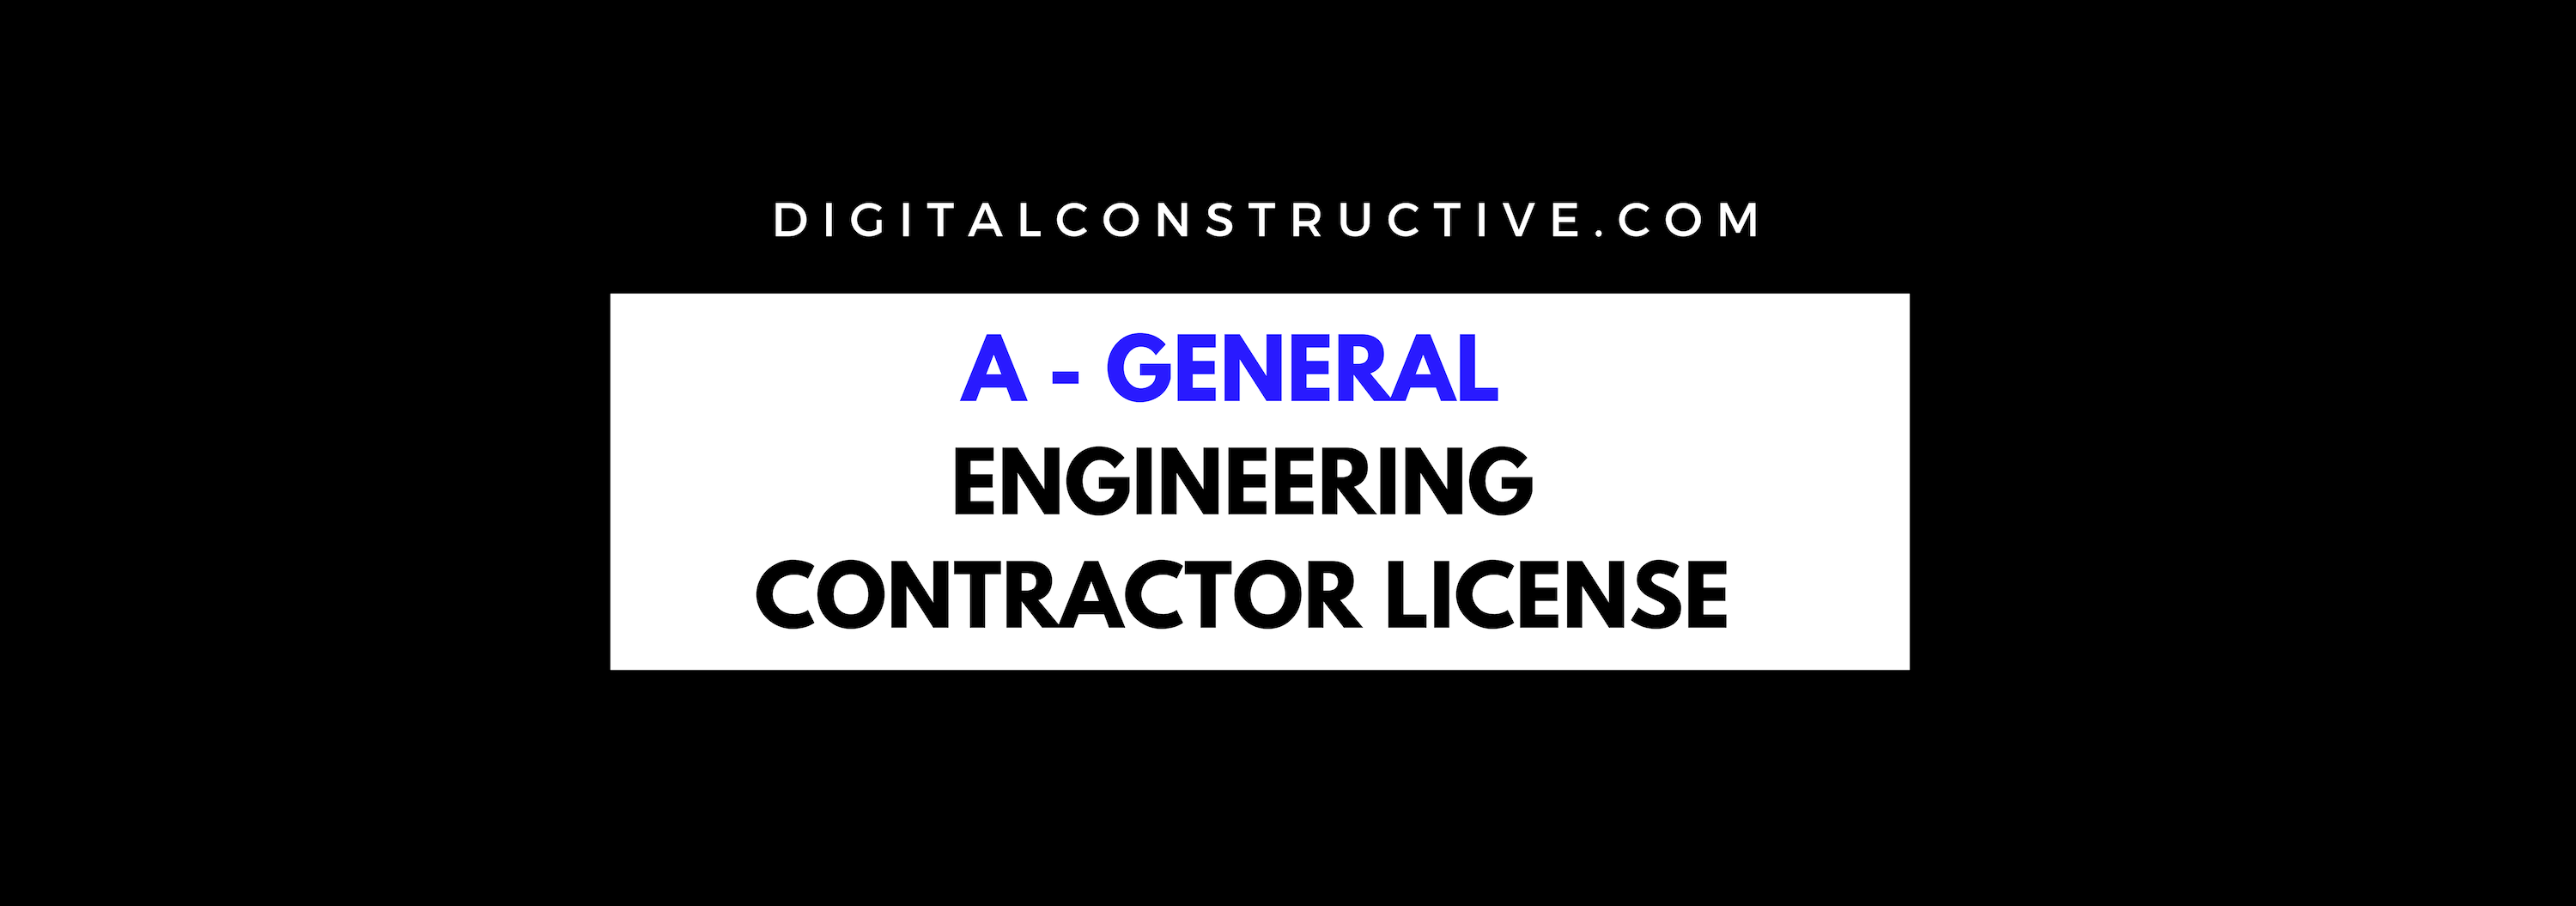 featured image for a blog post about how to get the general engineering contractor license in california